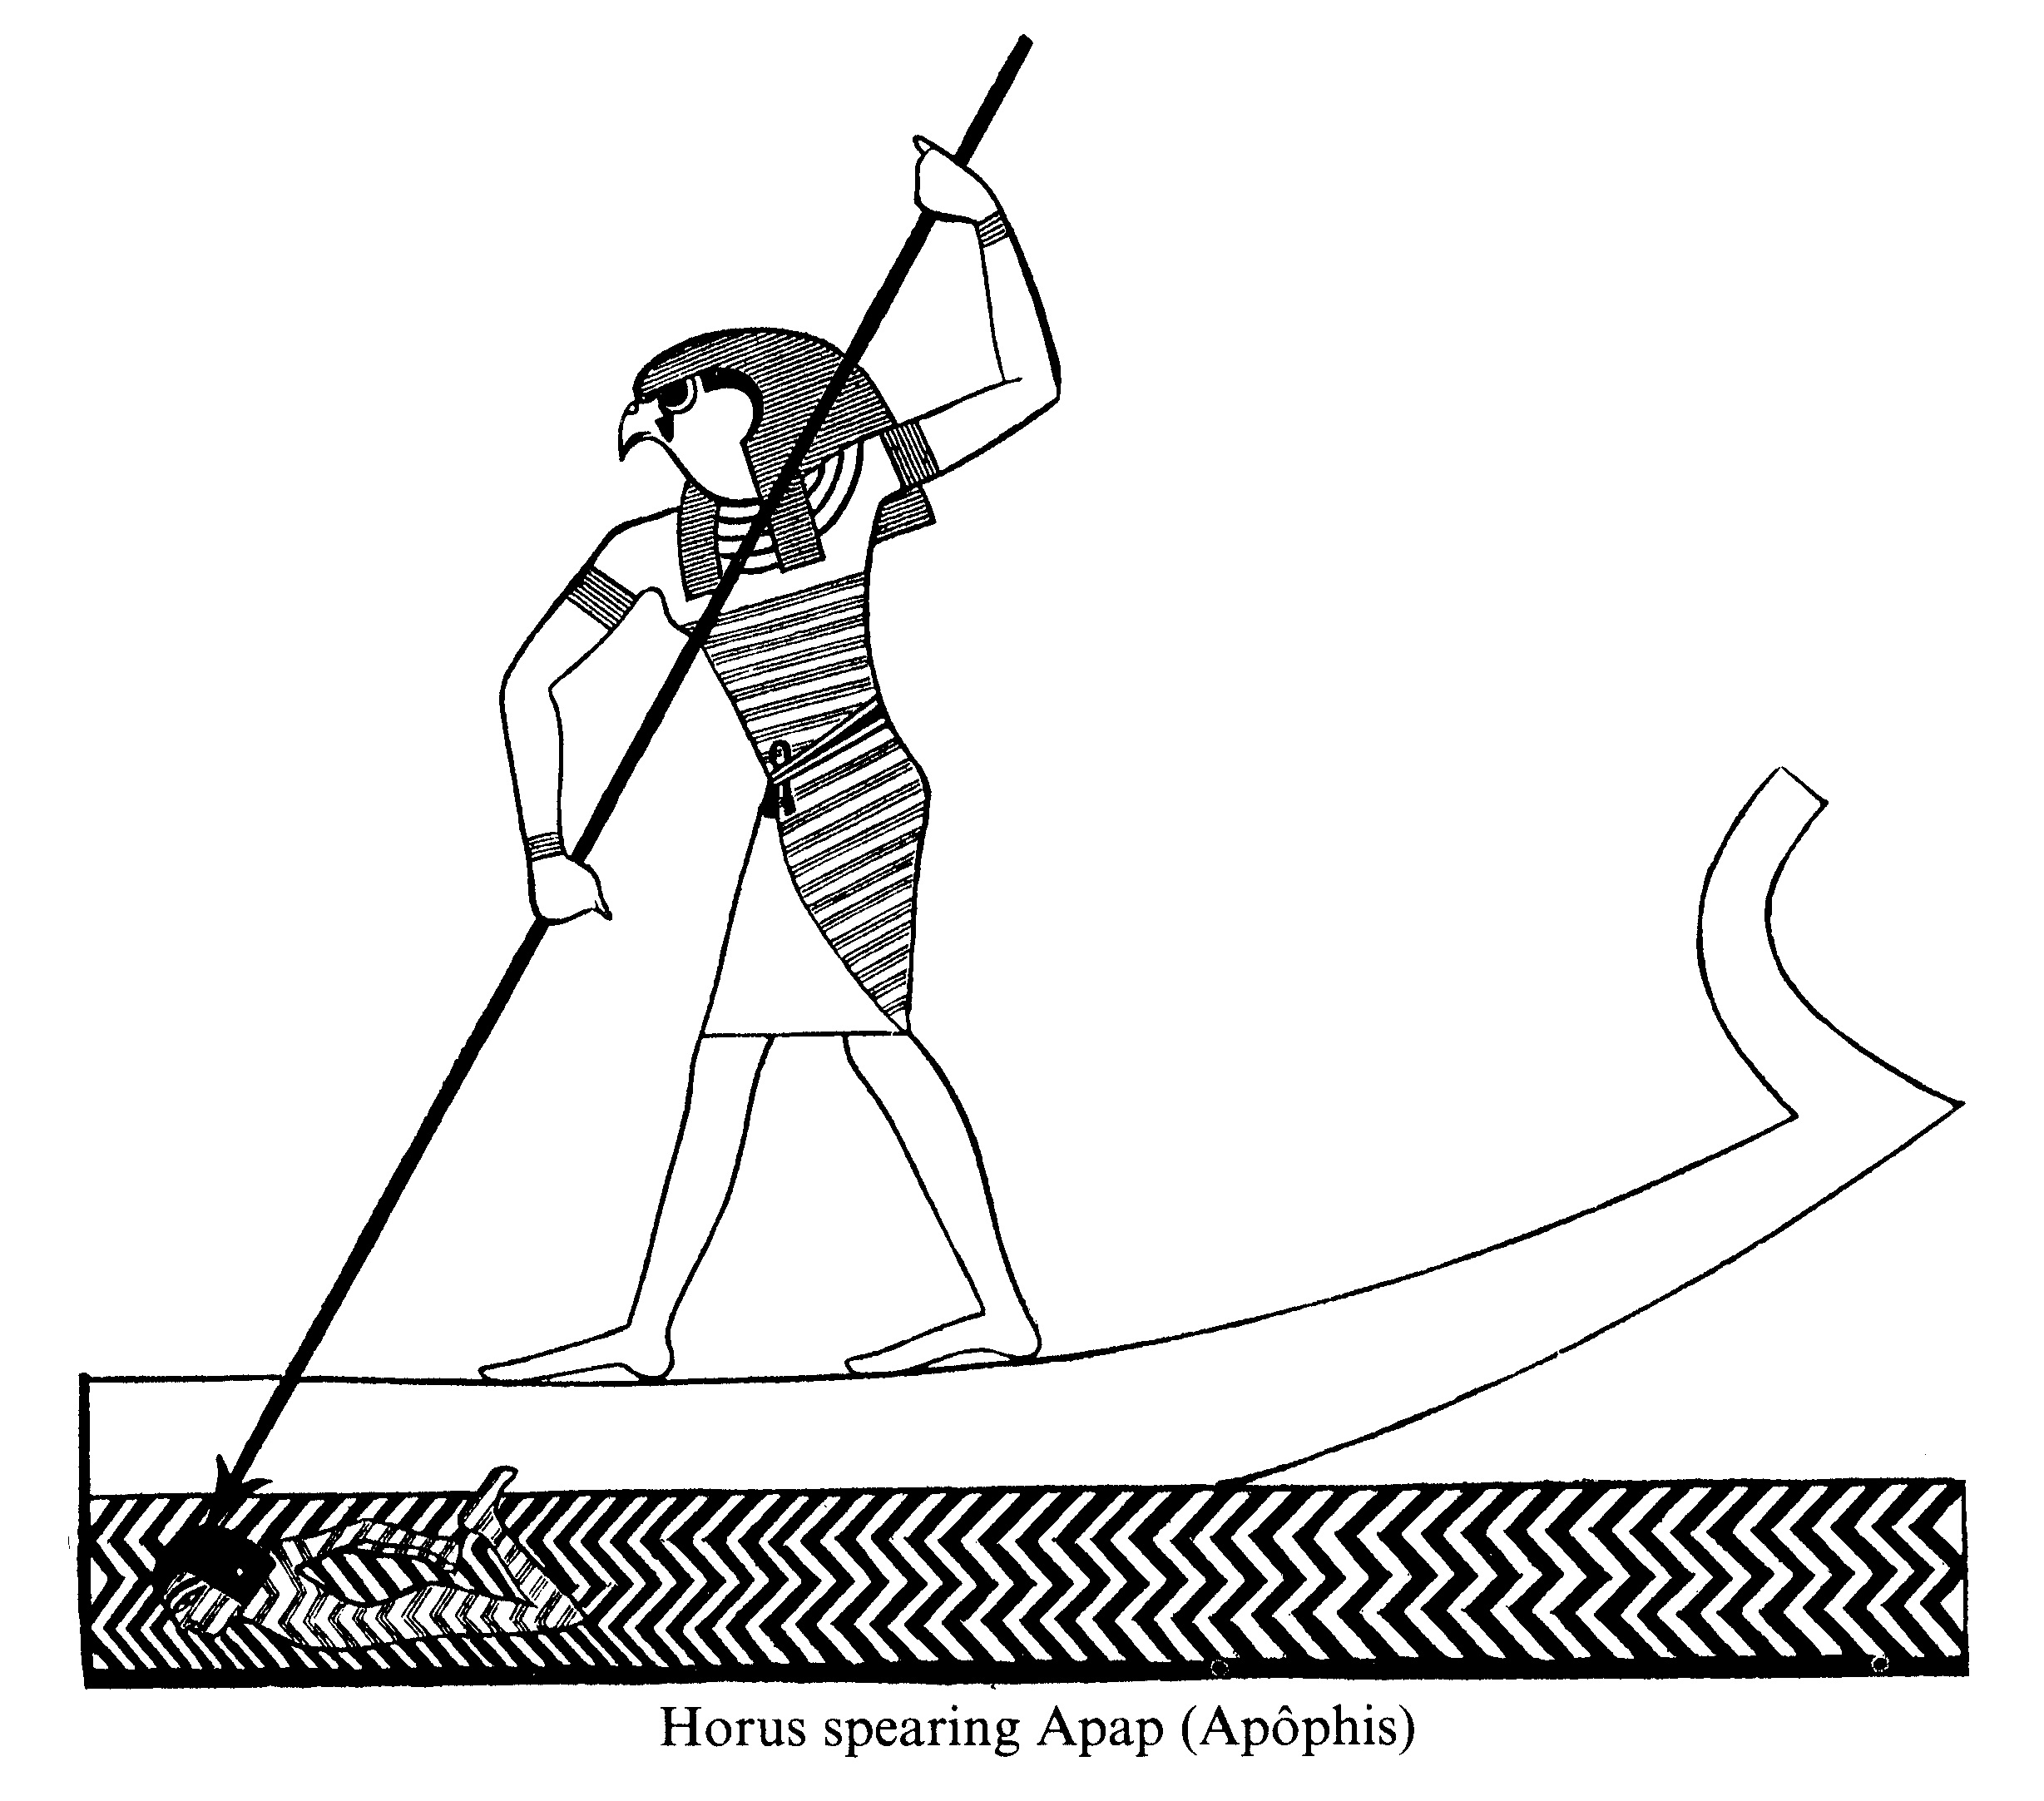 Heru spearing Apep who is in the form of a man